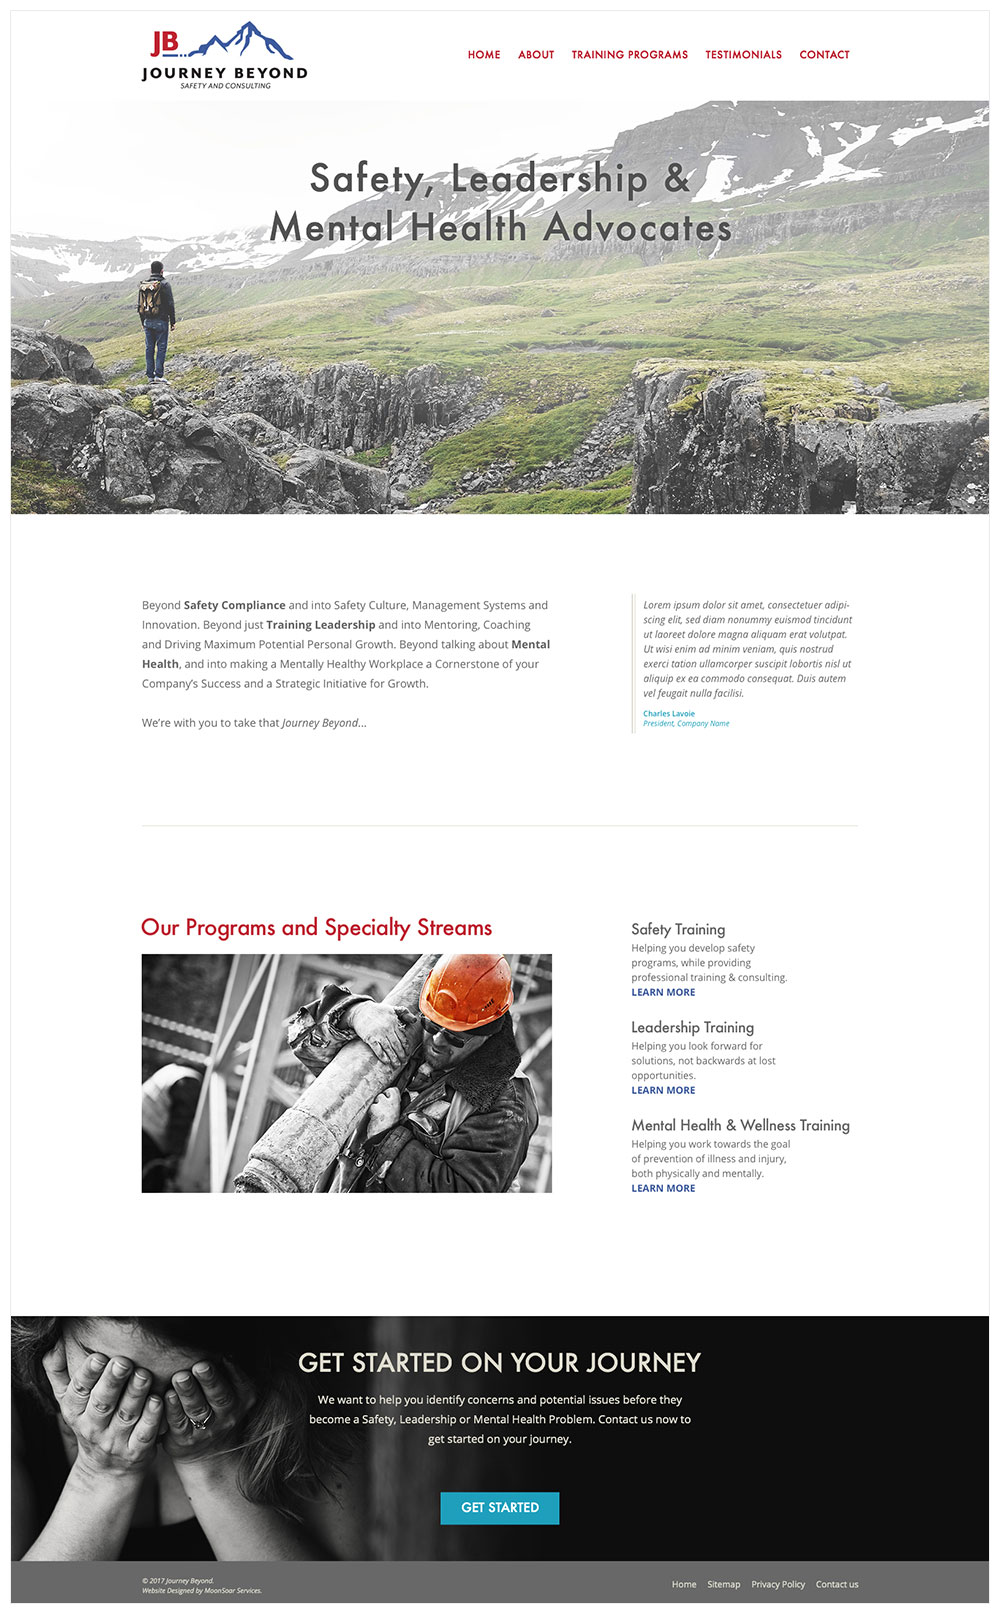 Journey Beyond Website Design